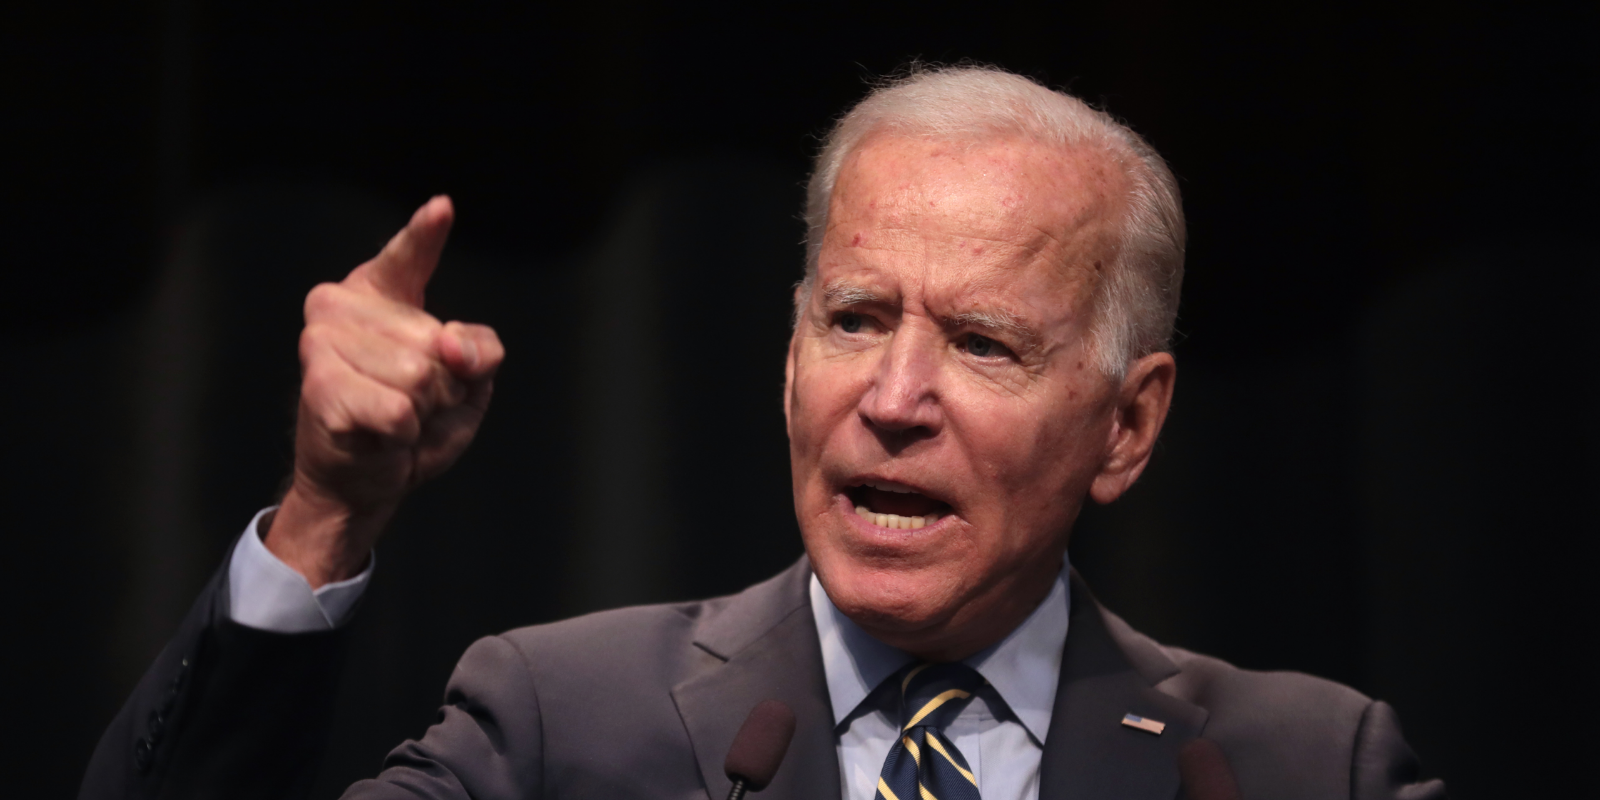 Pentagon rips into Biden for criticizing them on access to information